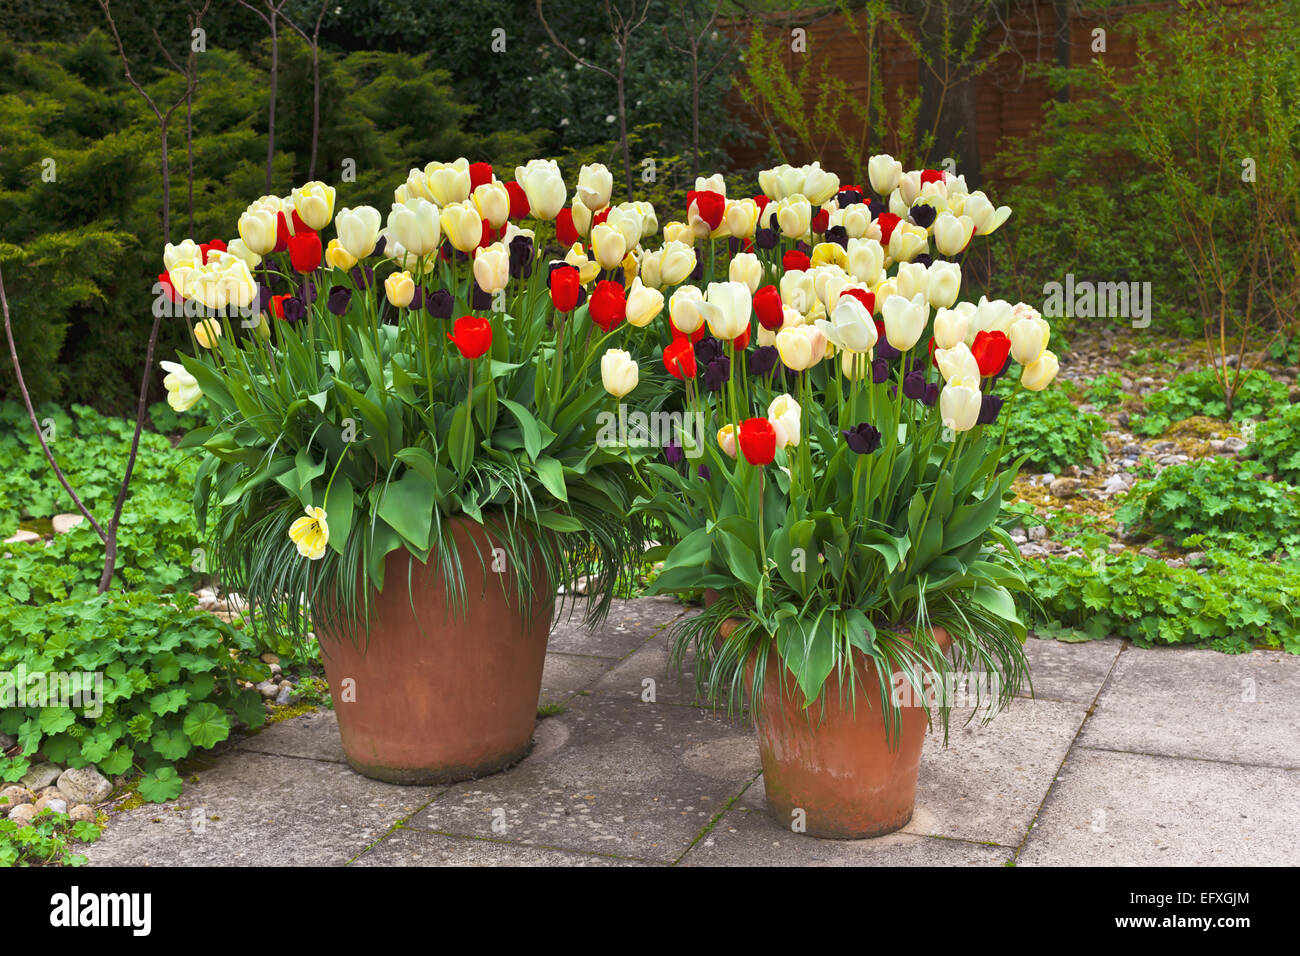 red blue and white tulips in large ceramic planters on a flagged flagged patio - Large Ceramic Planters